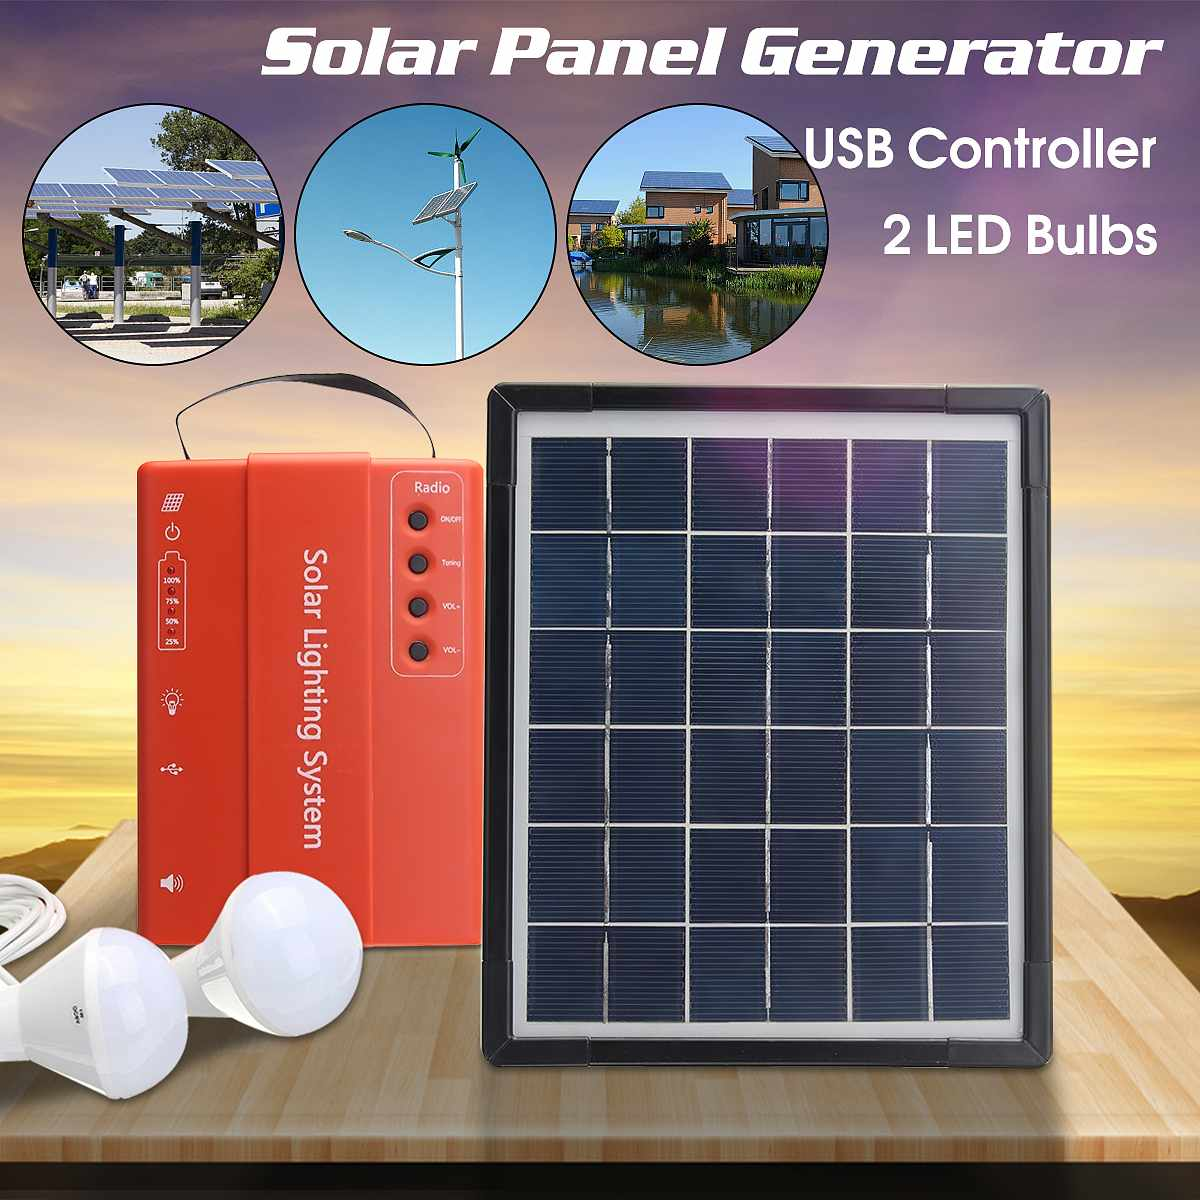 5W 9V USB Solar Panels Lighting Storage System Portable Outdoor DC Charging Power Bank Generator With 2LED Bulbs Light